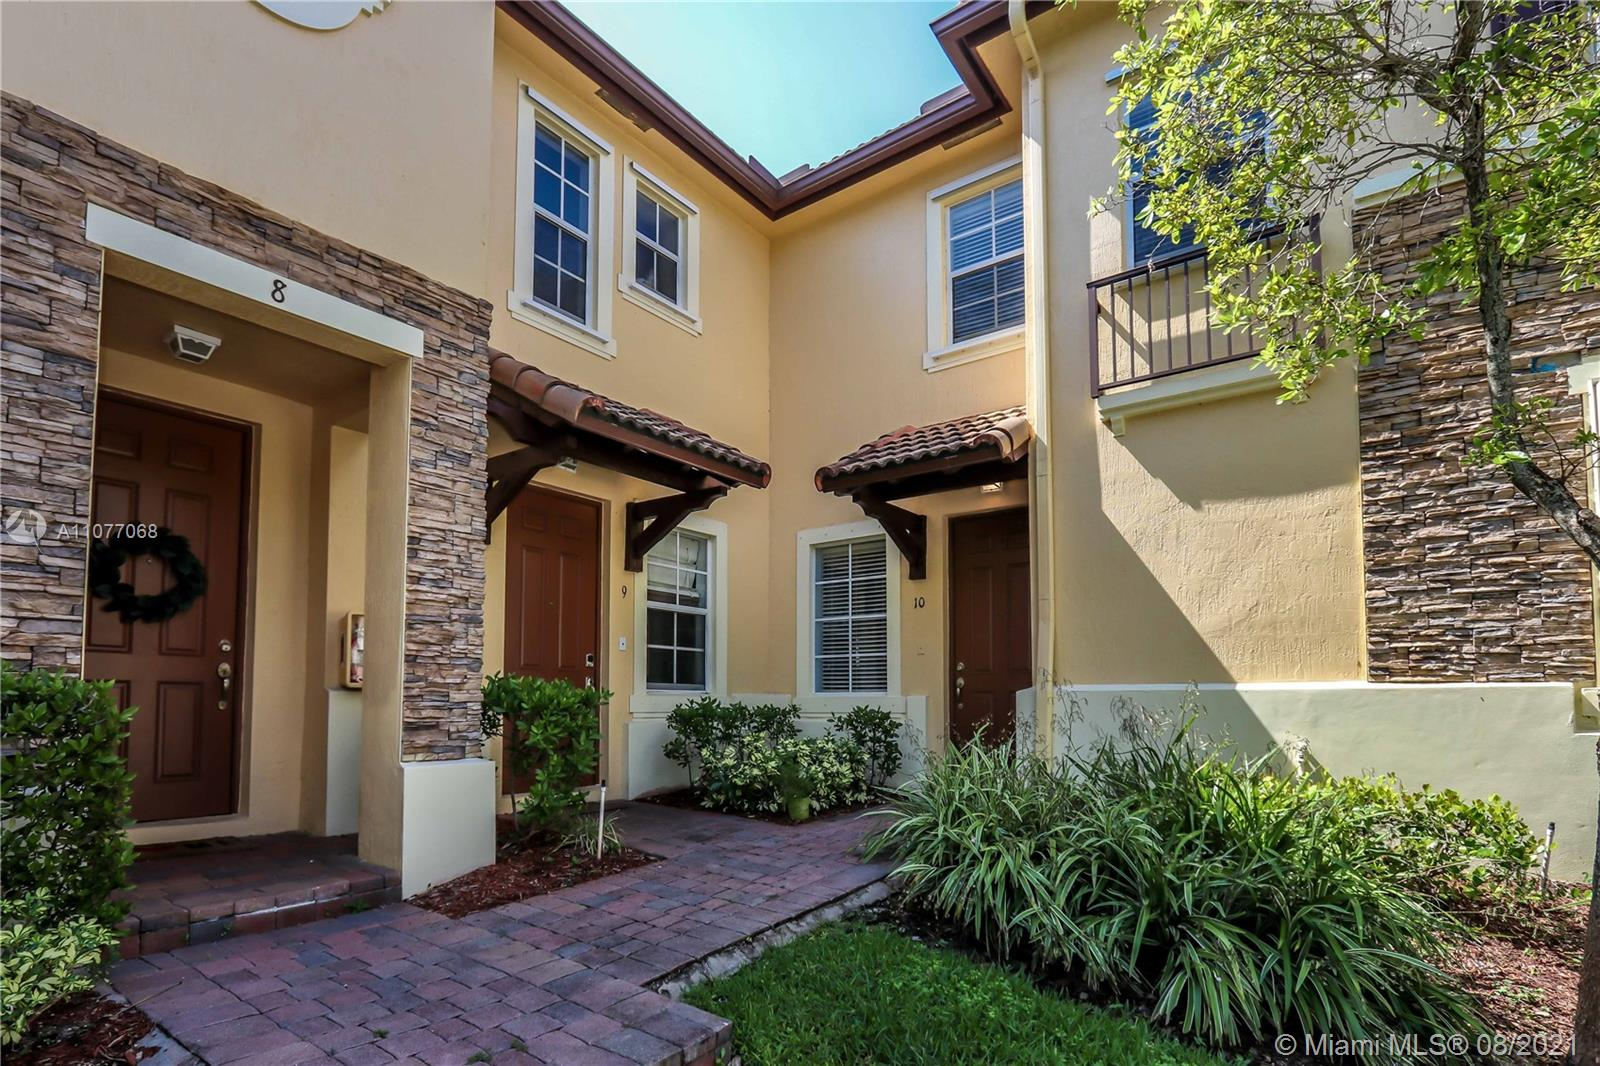 9163 SW 227th St #10 For Sale A11077068, FL